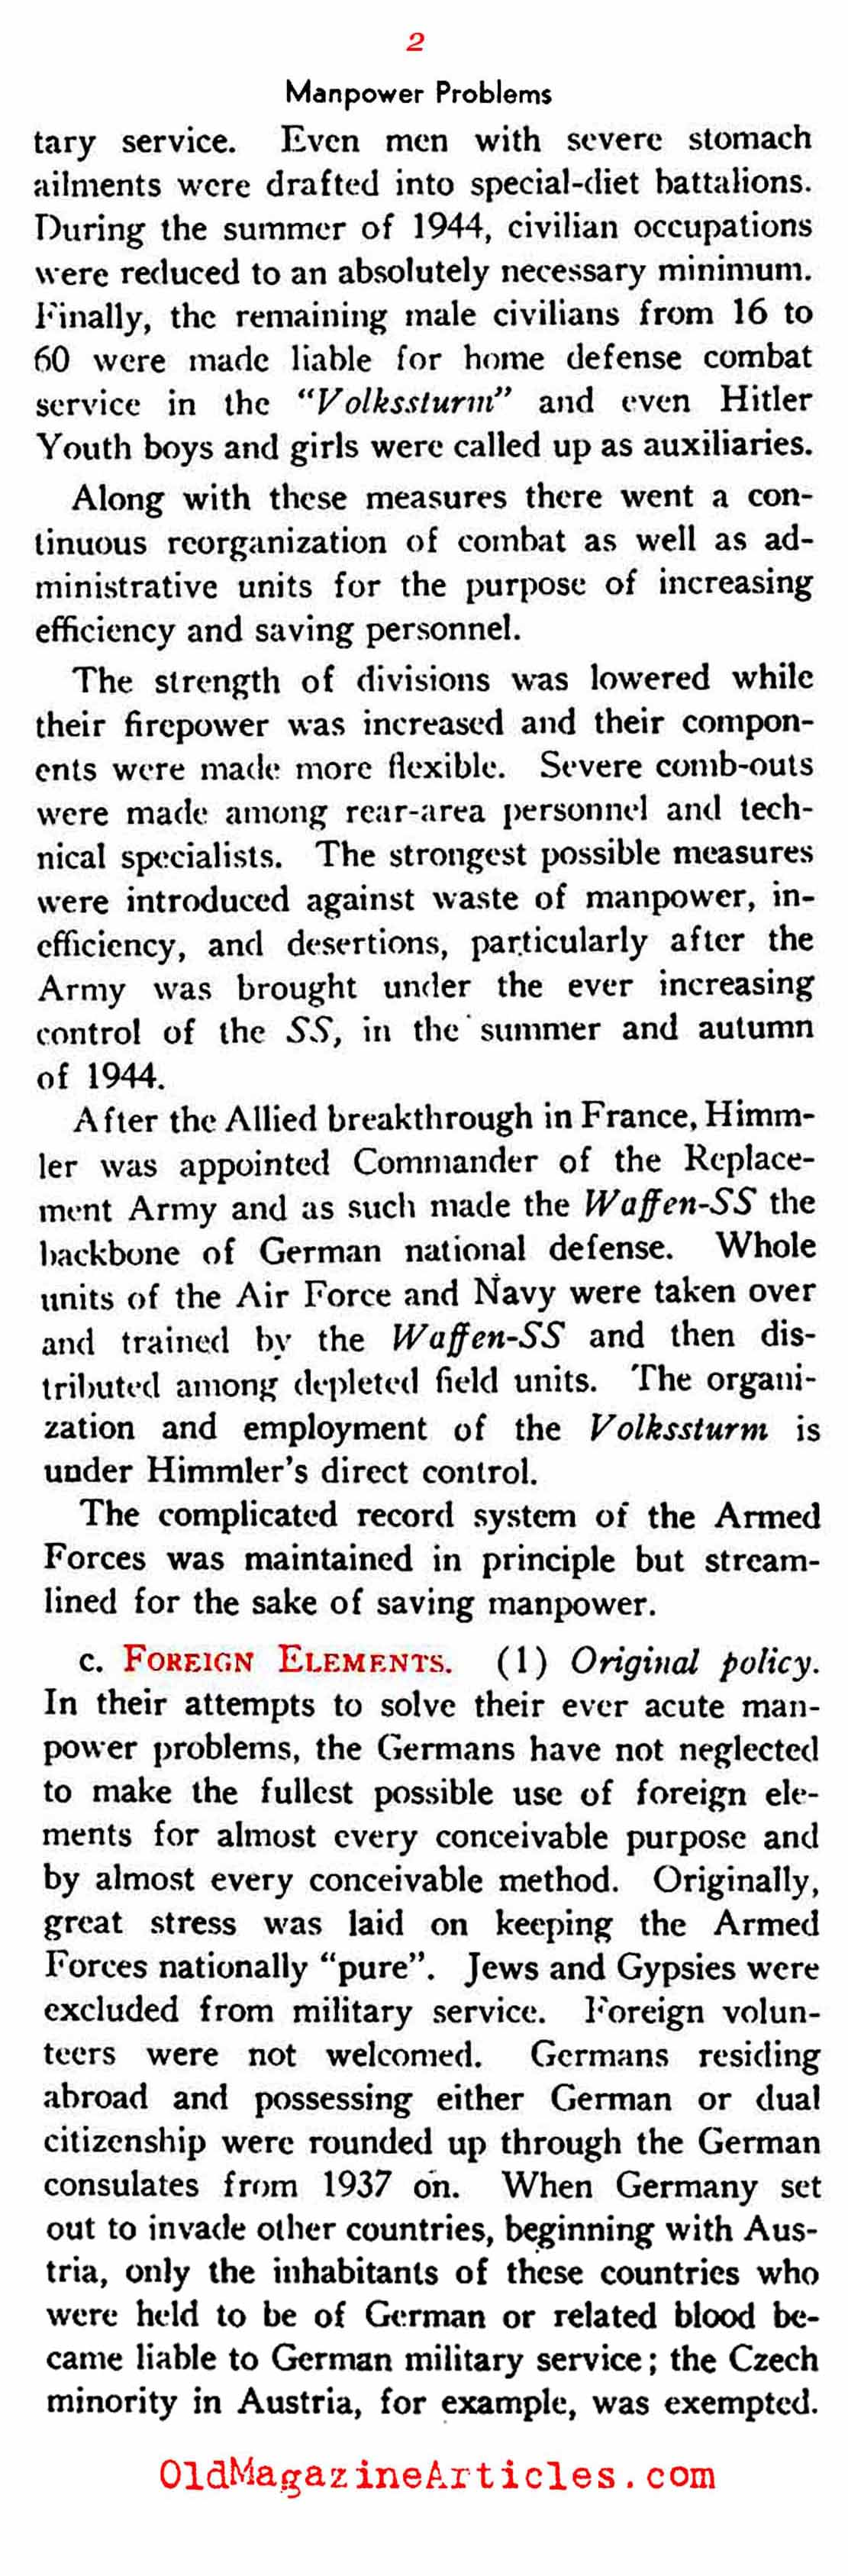 The German Draft and Manpower Supply  (U.S. Dept. of War, 1945)